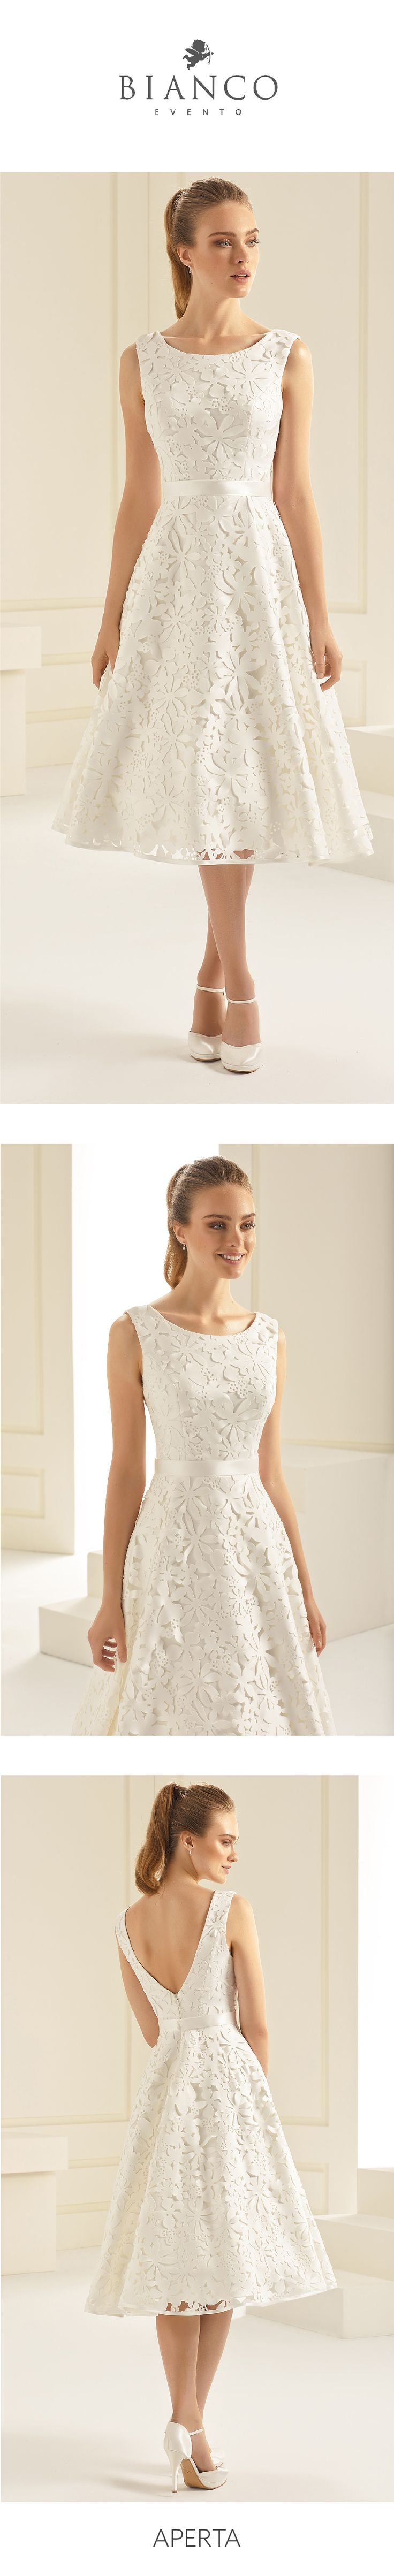 Enjoy the variety of our styles from #NewCollection2018 on www.bianco-evento.com #biancoevento #biancoevento2018 #weddingdress #bridetobe